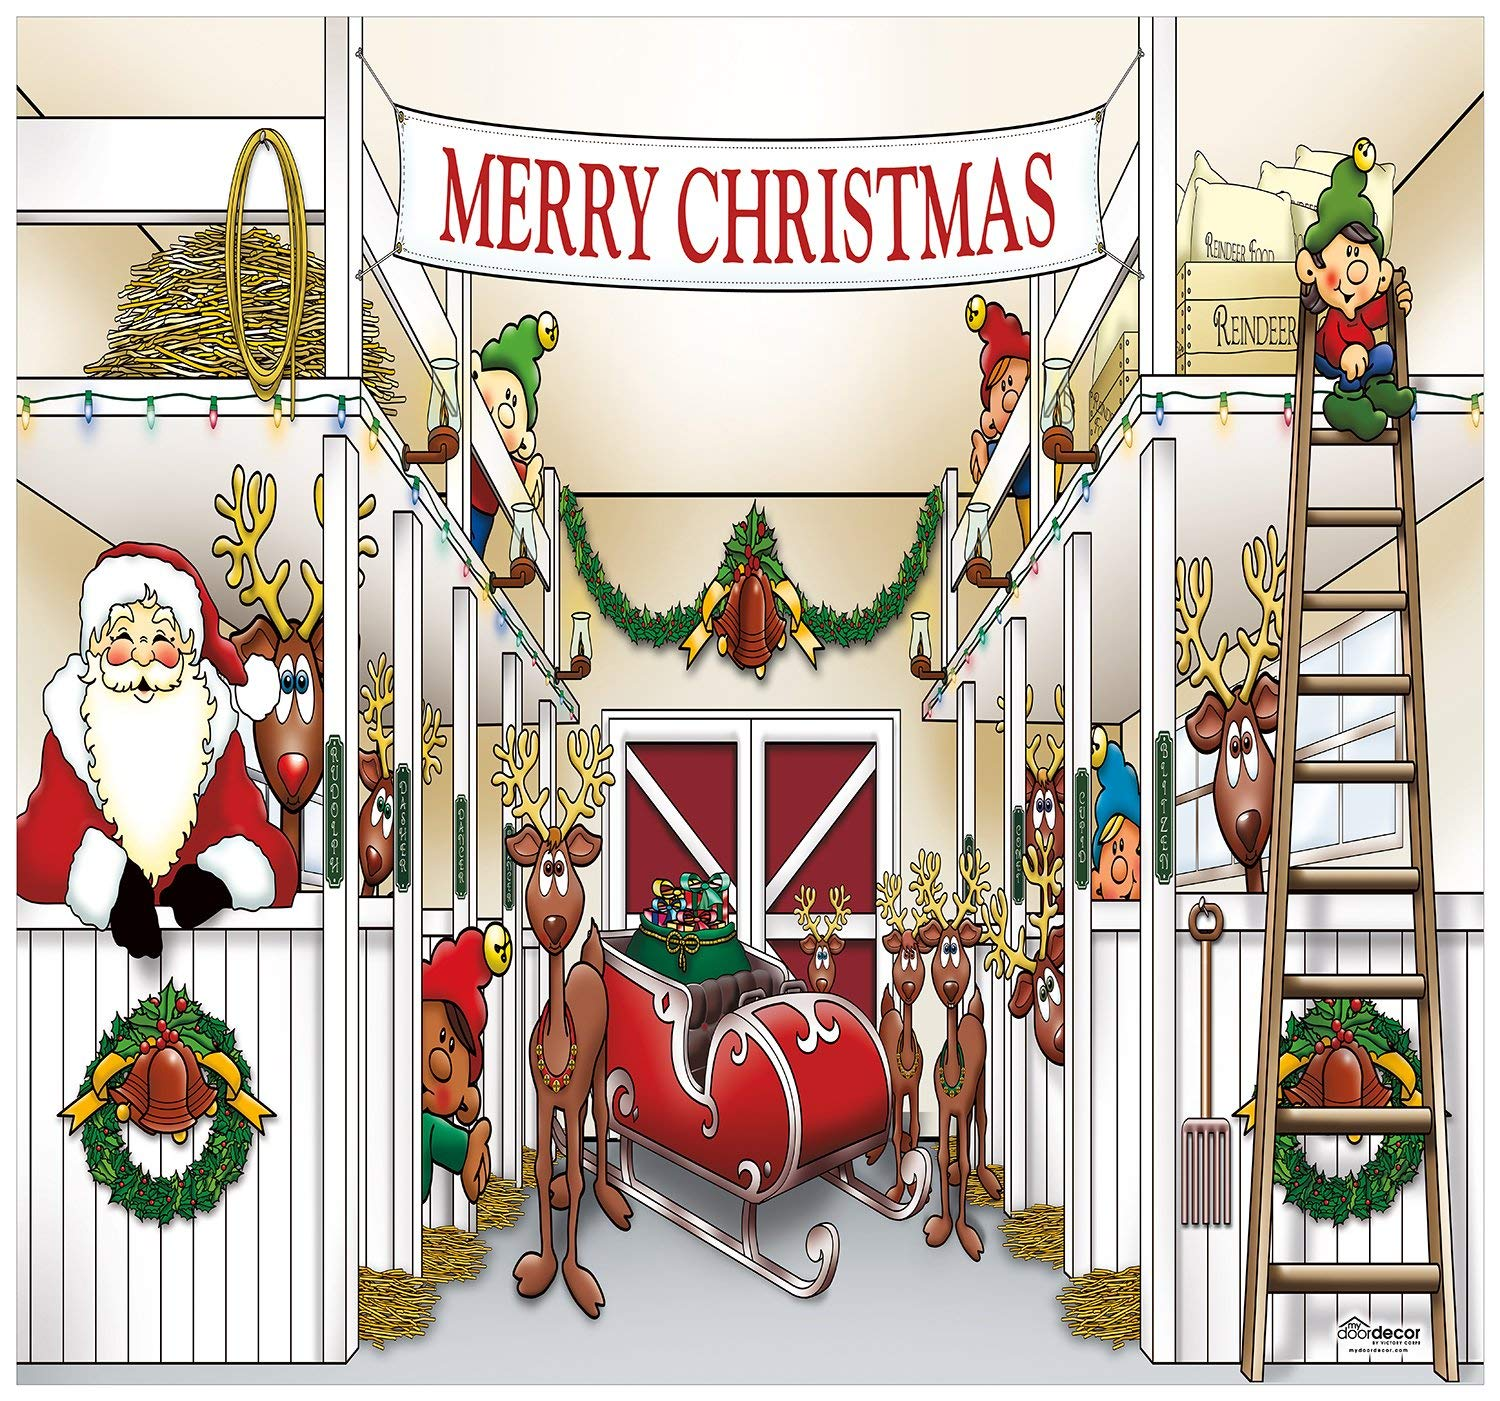 Victory Corps Outdoor Christmas Holiday Garage Door Banner Cover Mural Décoration - Santa's Reindeer Barn Holiday Garage Door Banner Décor Sign 7'x8'